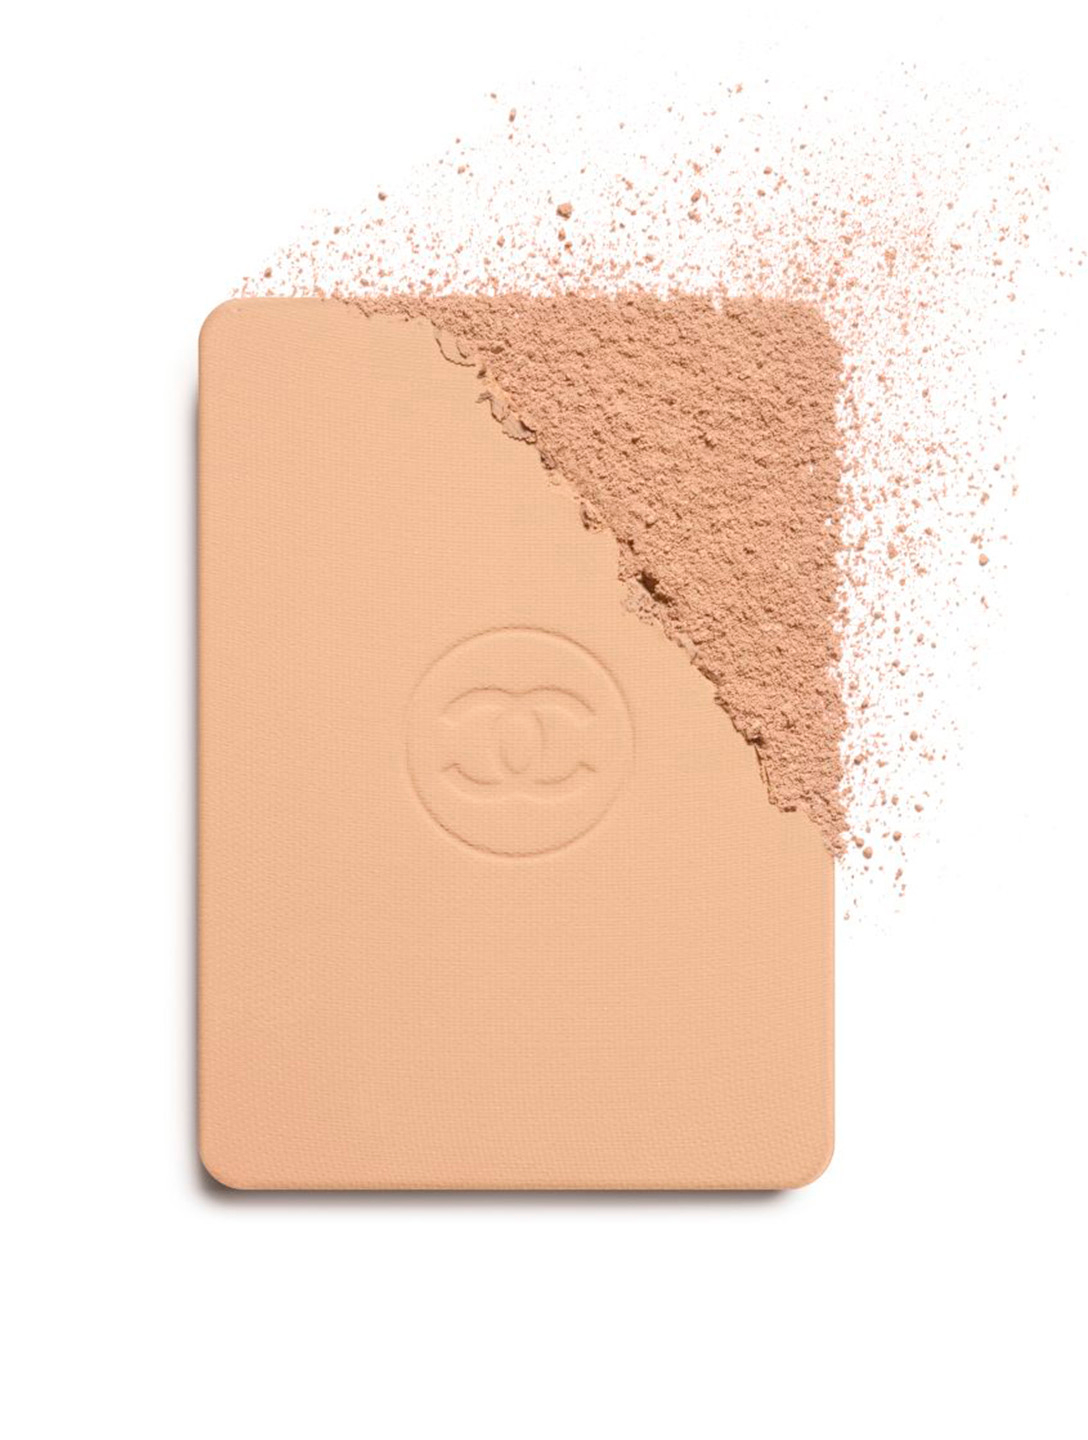 CHANEL Ultrawear – All – Day Comfort Flawless Finish Compact Foundation CHANEL Neutral